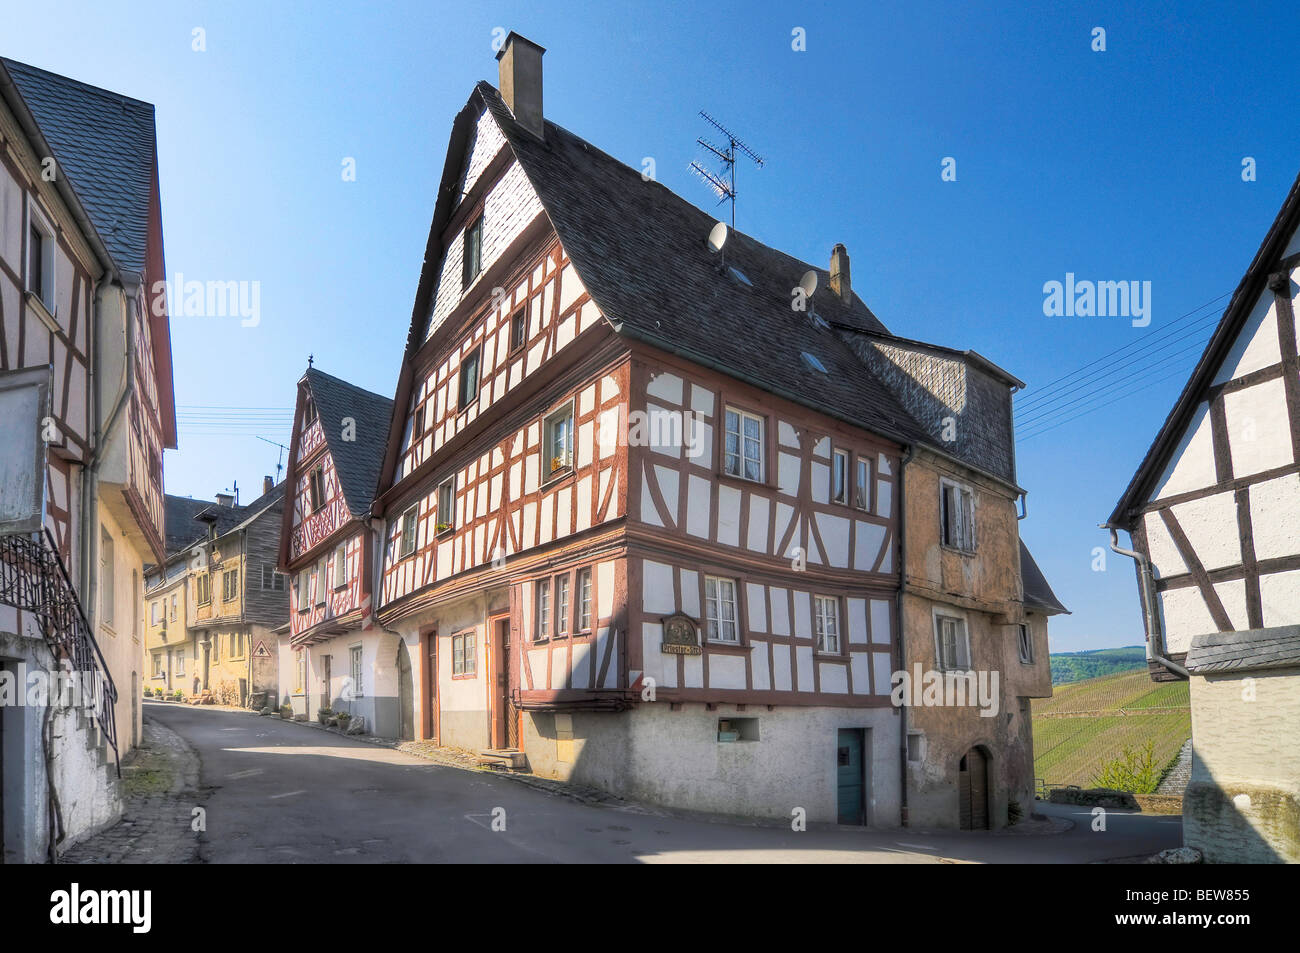 Half-timber houses in Enkirch on the Moselle, Rhineland-Palatinate, Germany